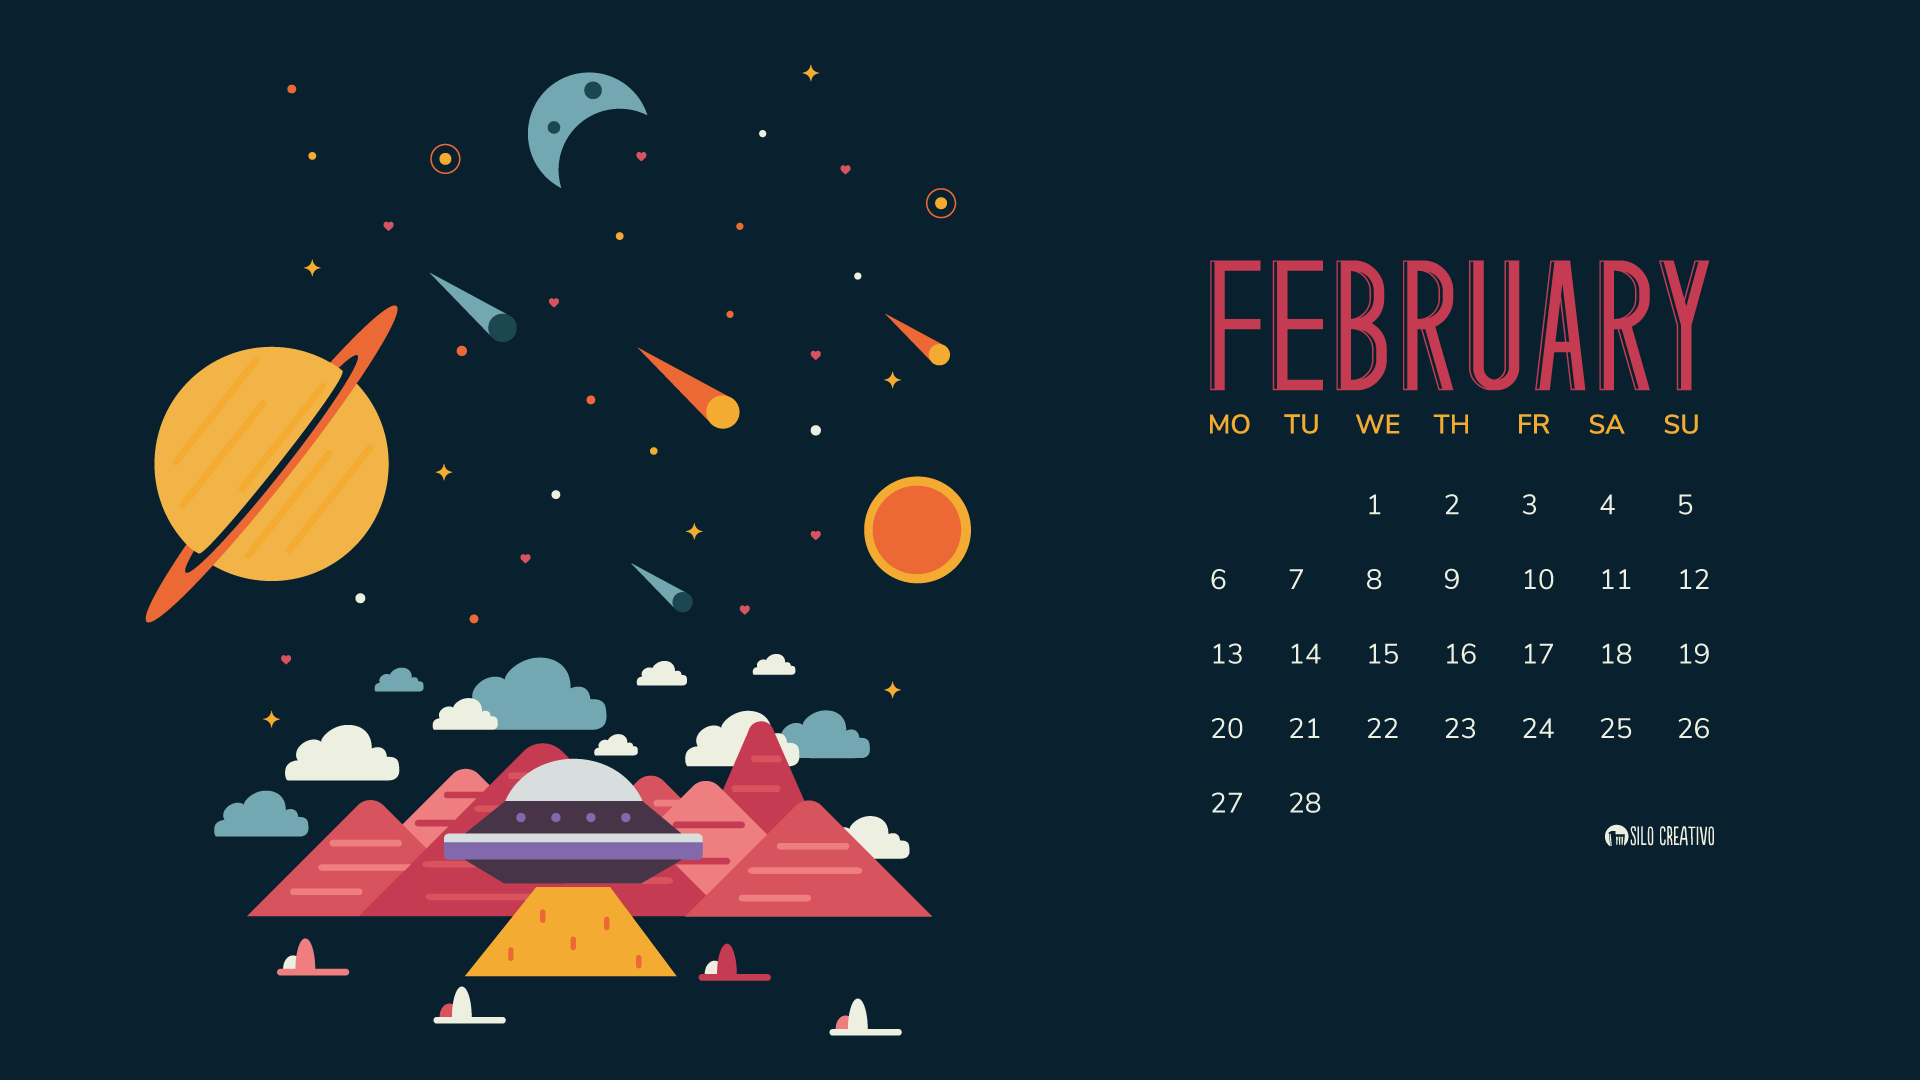 February Calendar Wallpaper Hd : February wallpaper free wallpapers hd